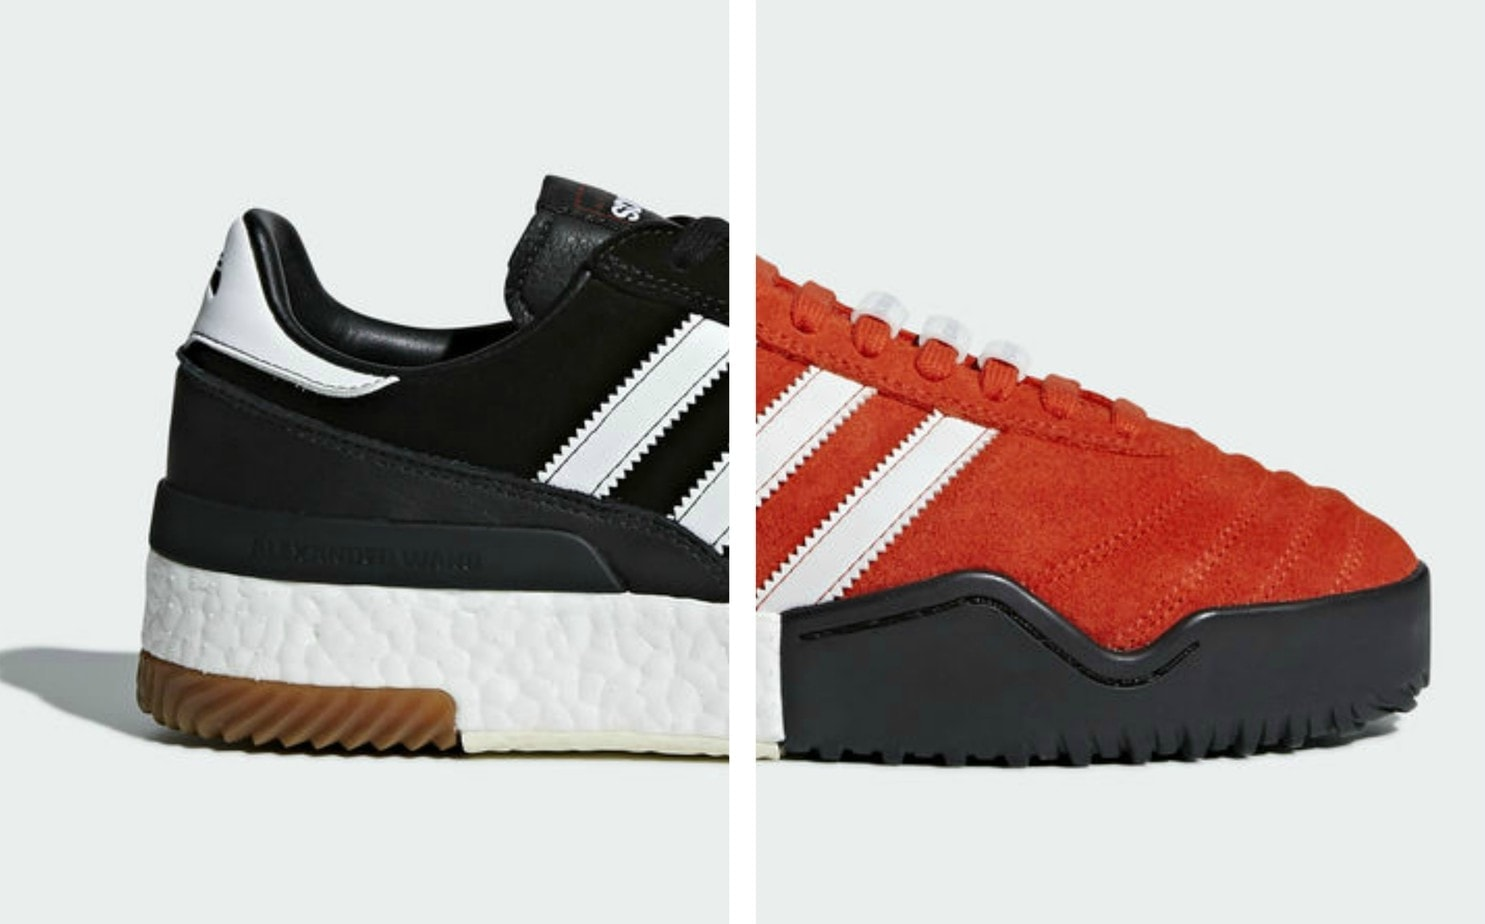 a9656983c769 adidas Originals by Alexander Wang is back for their first drop of 2018.  This time turning from the basketball court to the football pitch